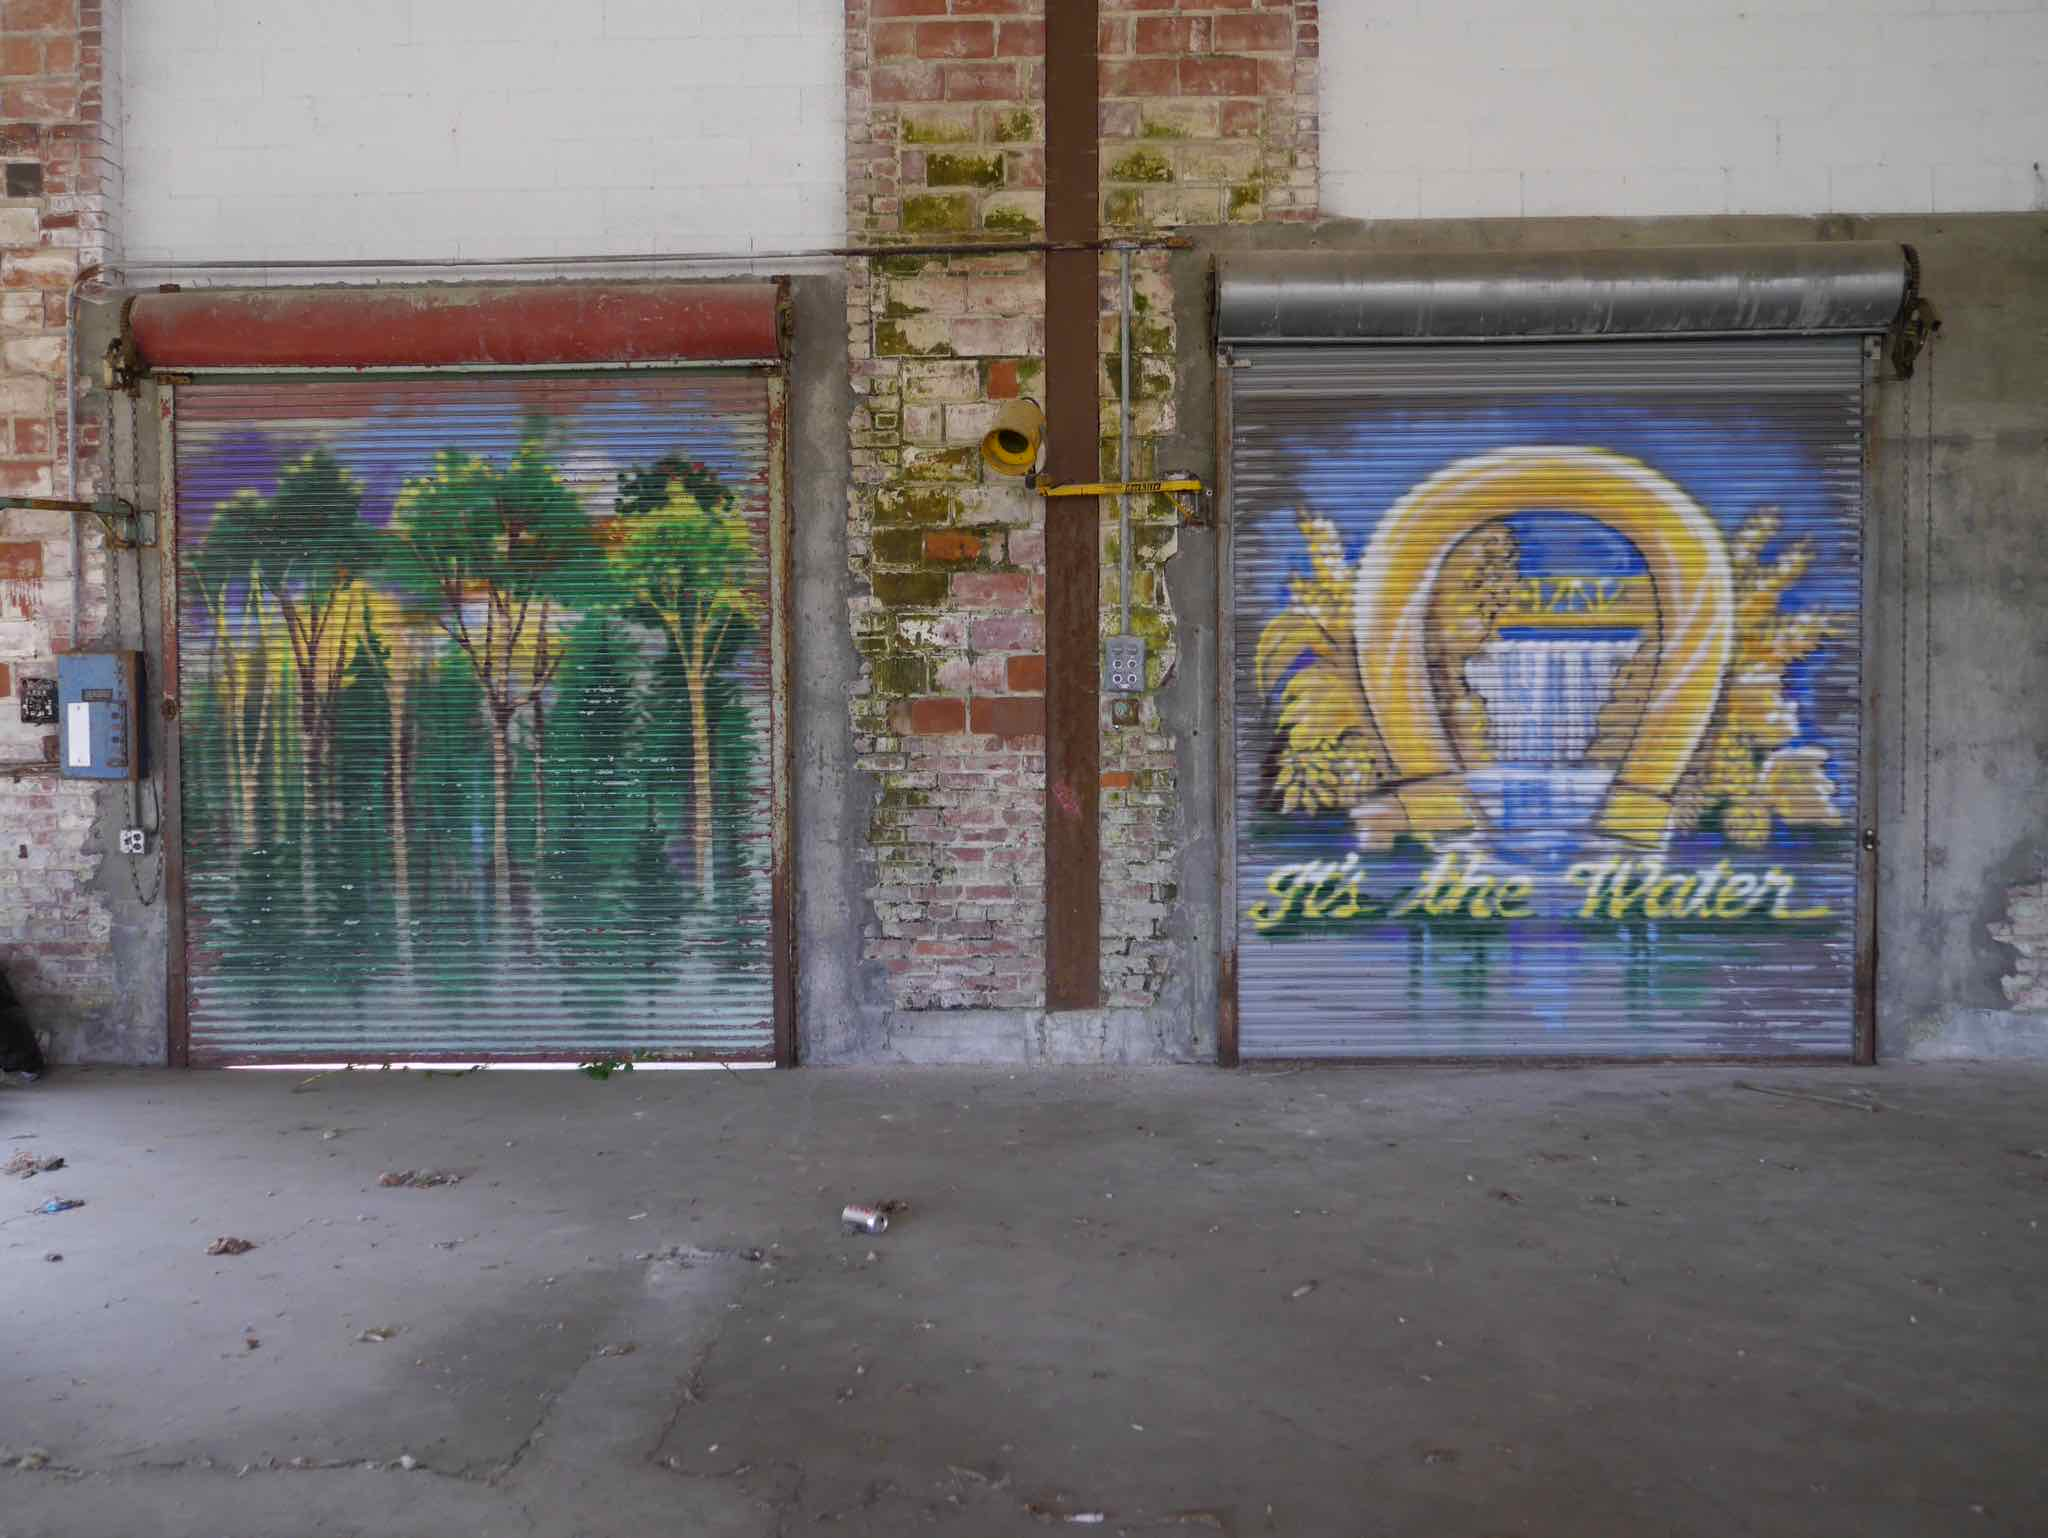 Artwork inside the orgiinal Olympia brewery in Tumwater, Washington. (photo by Cat Stelzer)